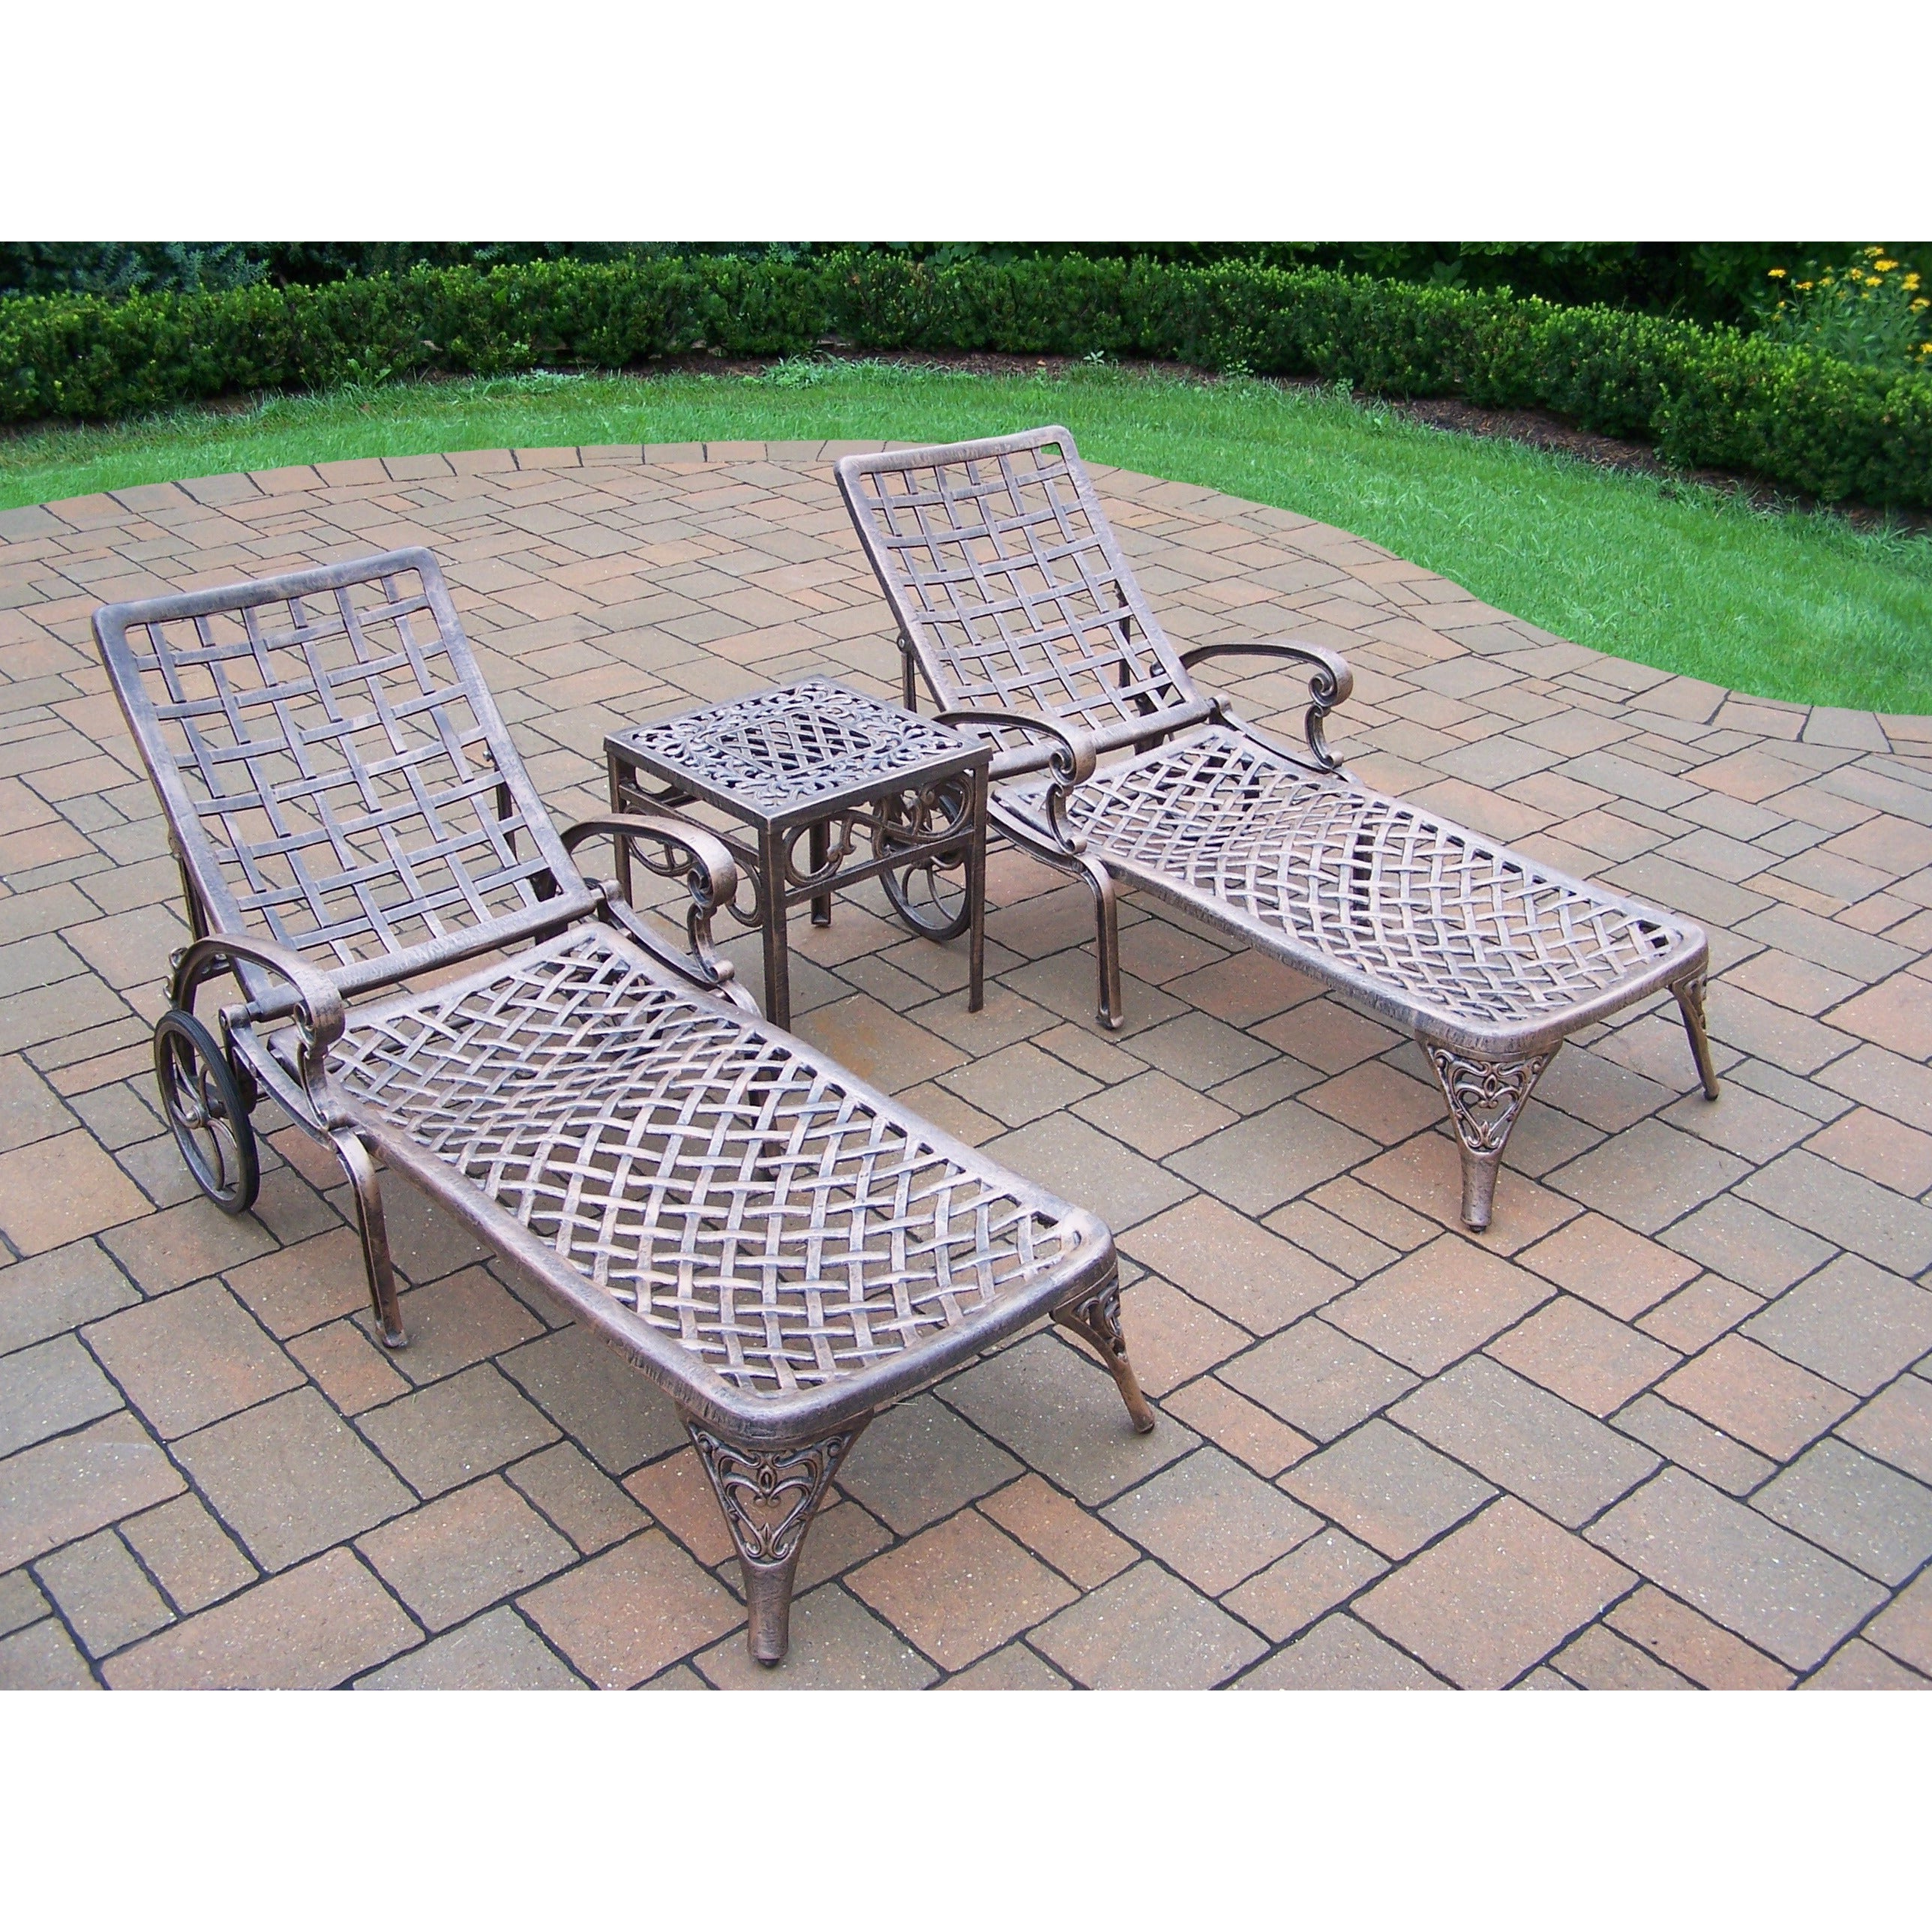 Well Known Aluminum Wheeled Chaise Lounges Regarding 3 Piece Merit Cast Aluminum Lounge Set With 2 Wheeled Chaise Lounges And Side Table (View 2 of 25)